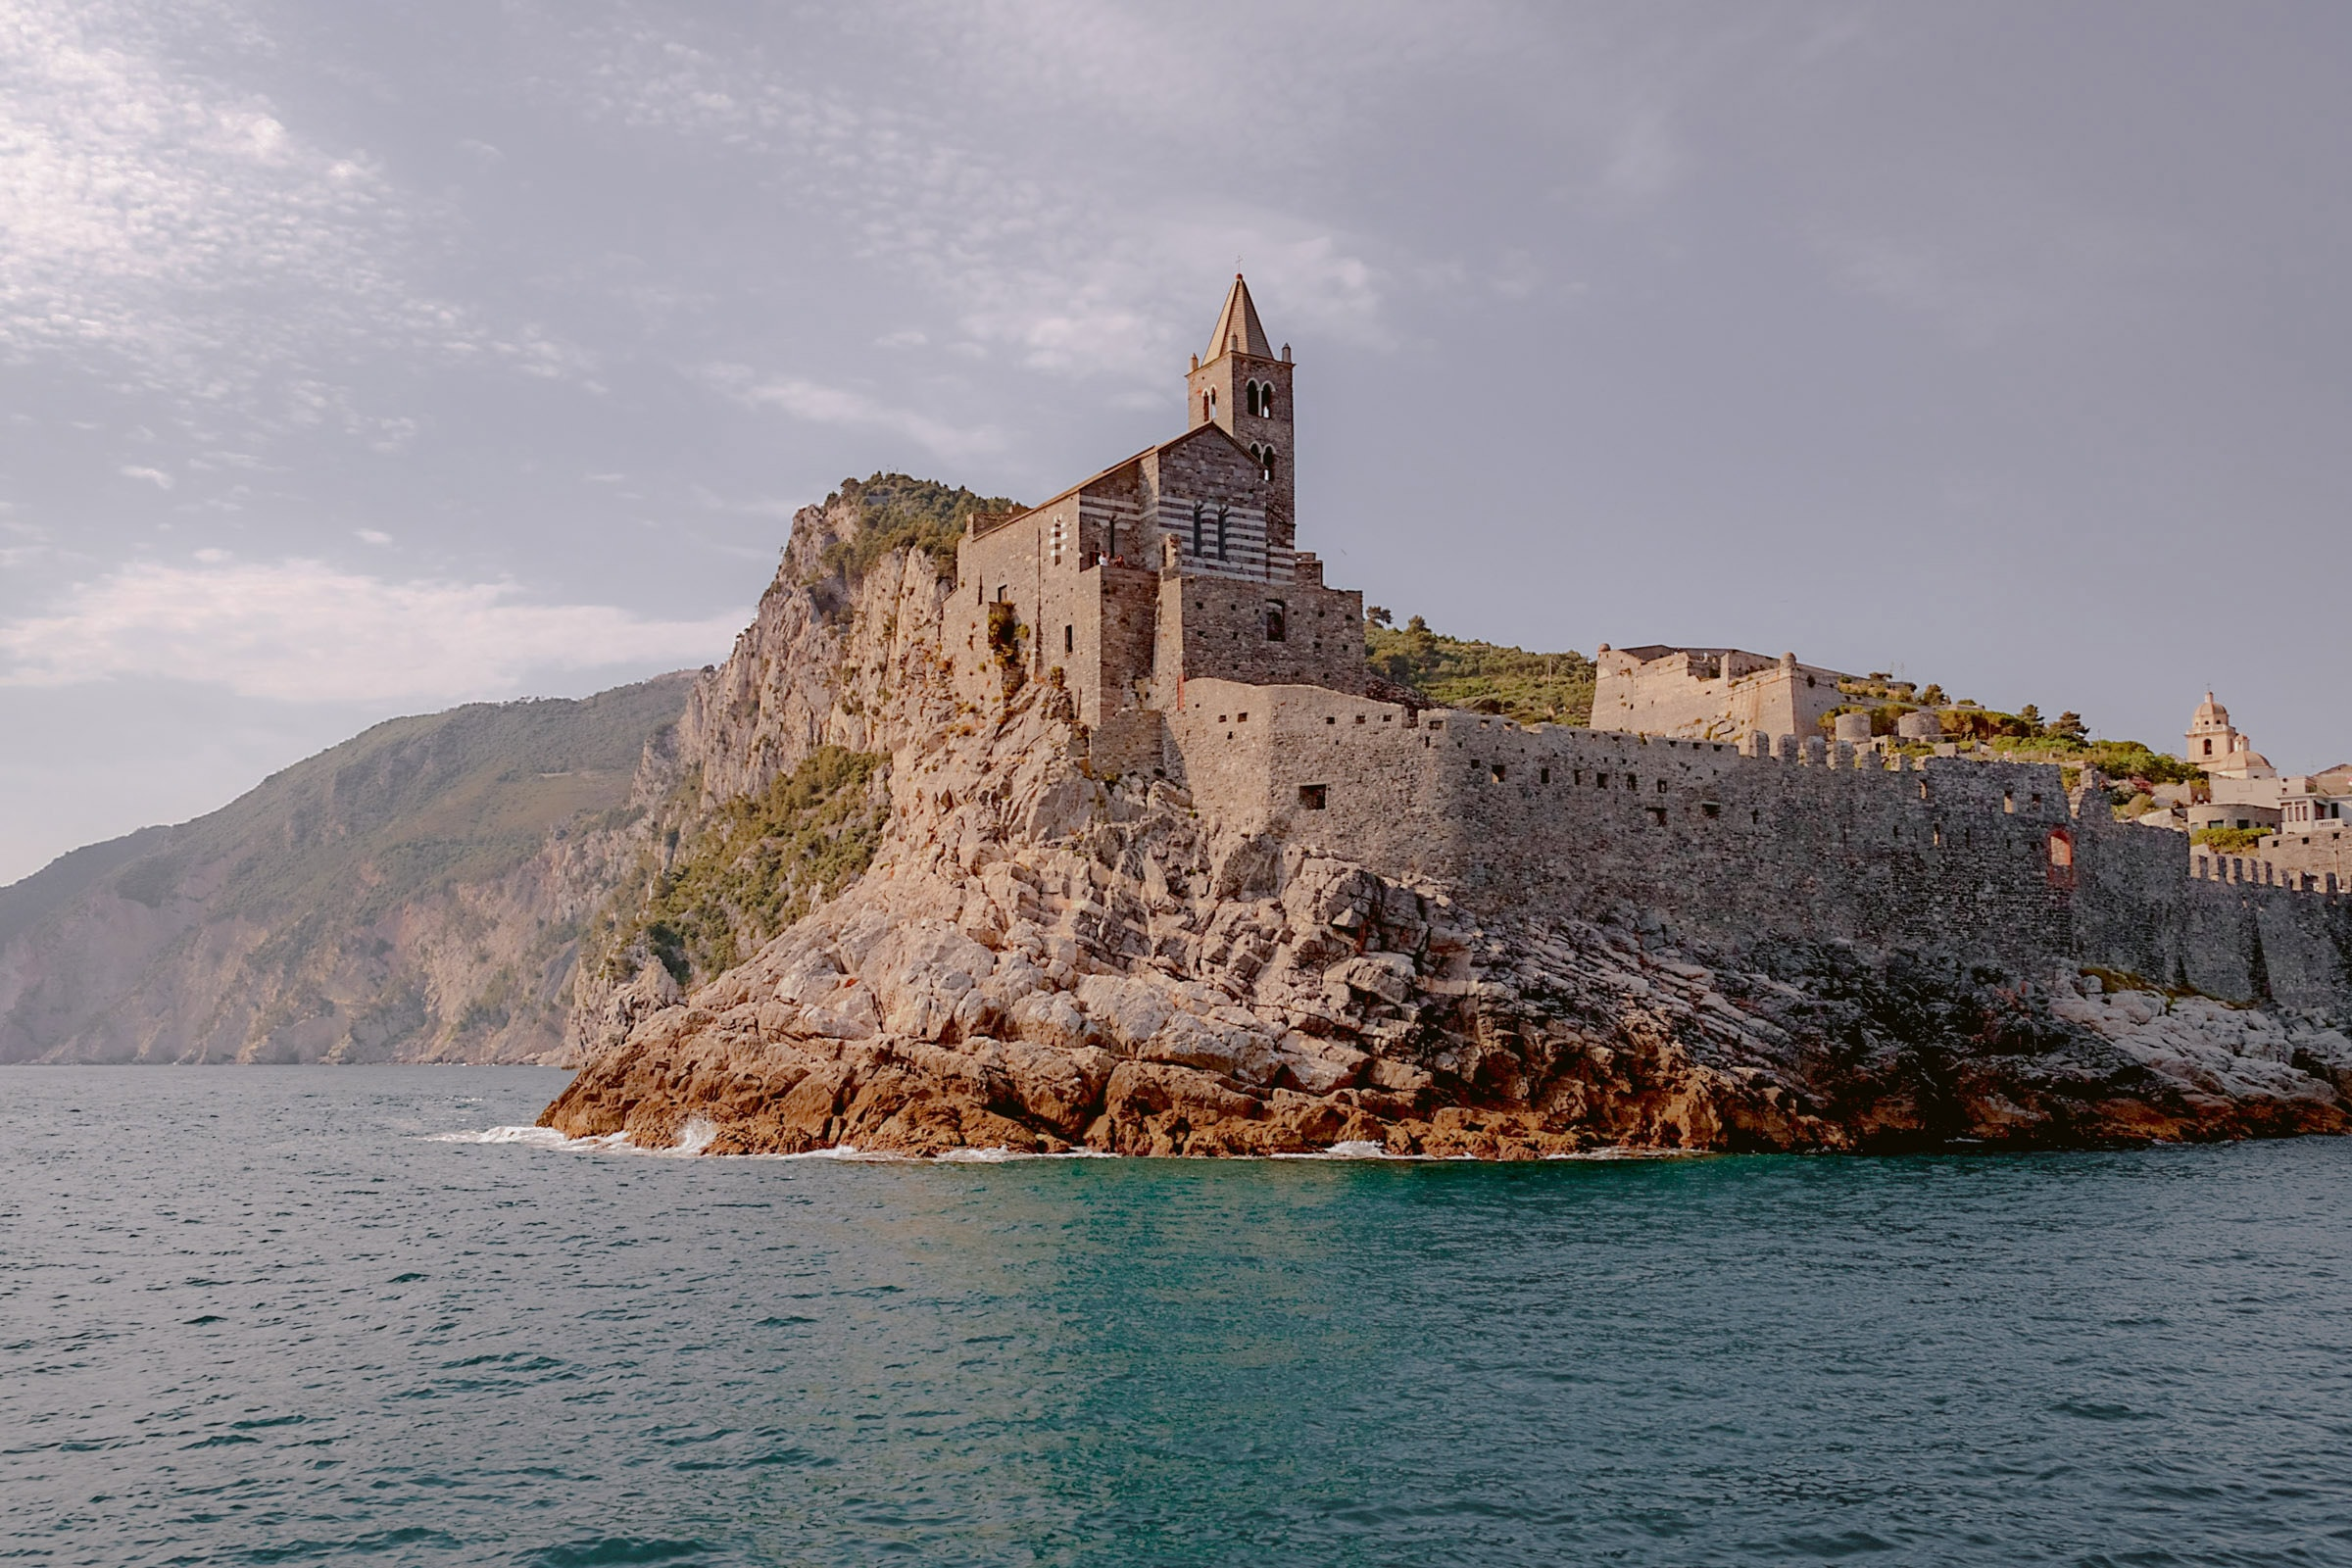 the church of Portovenere from the ocean